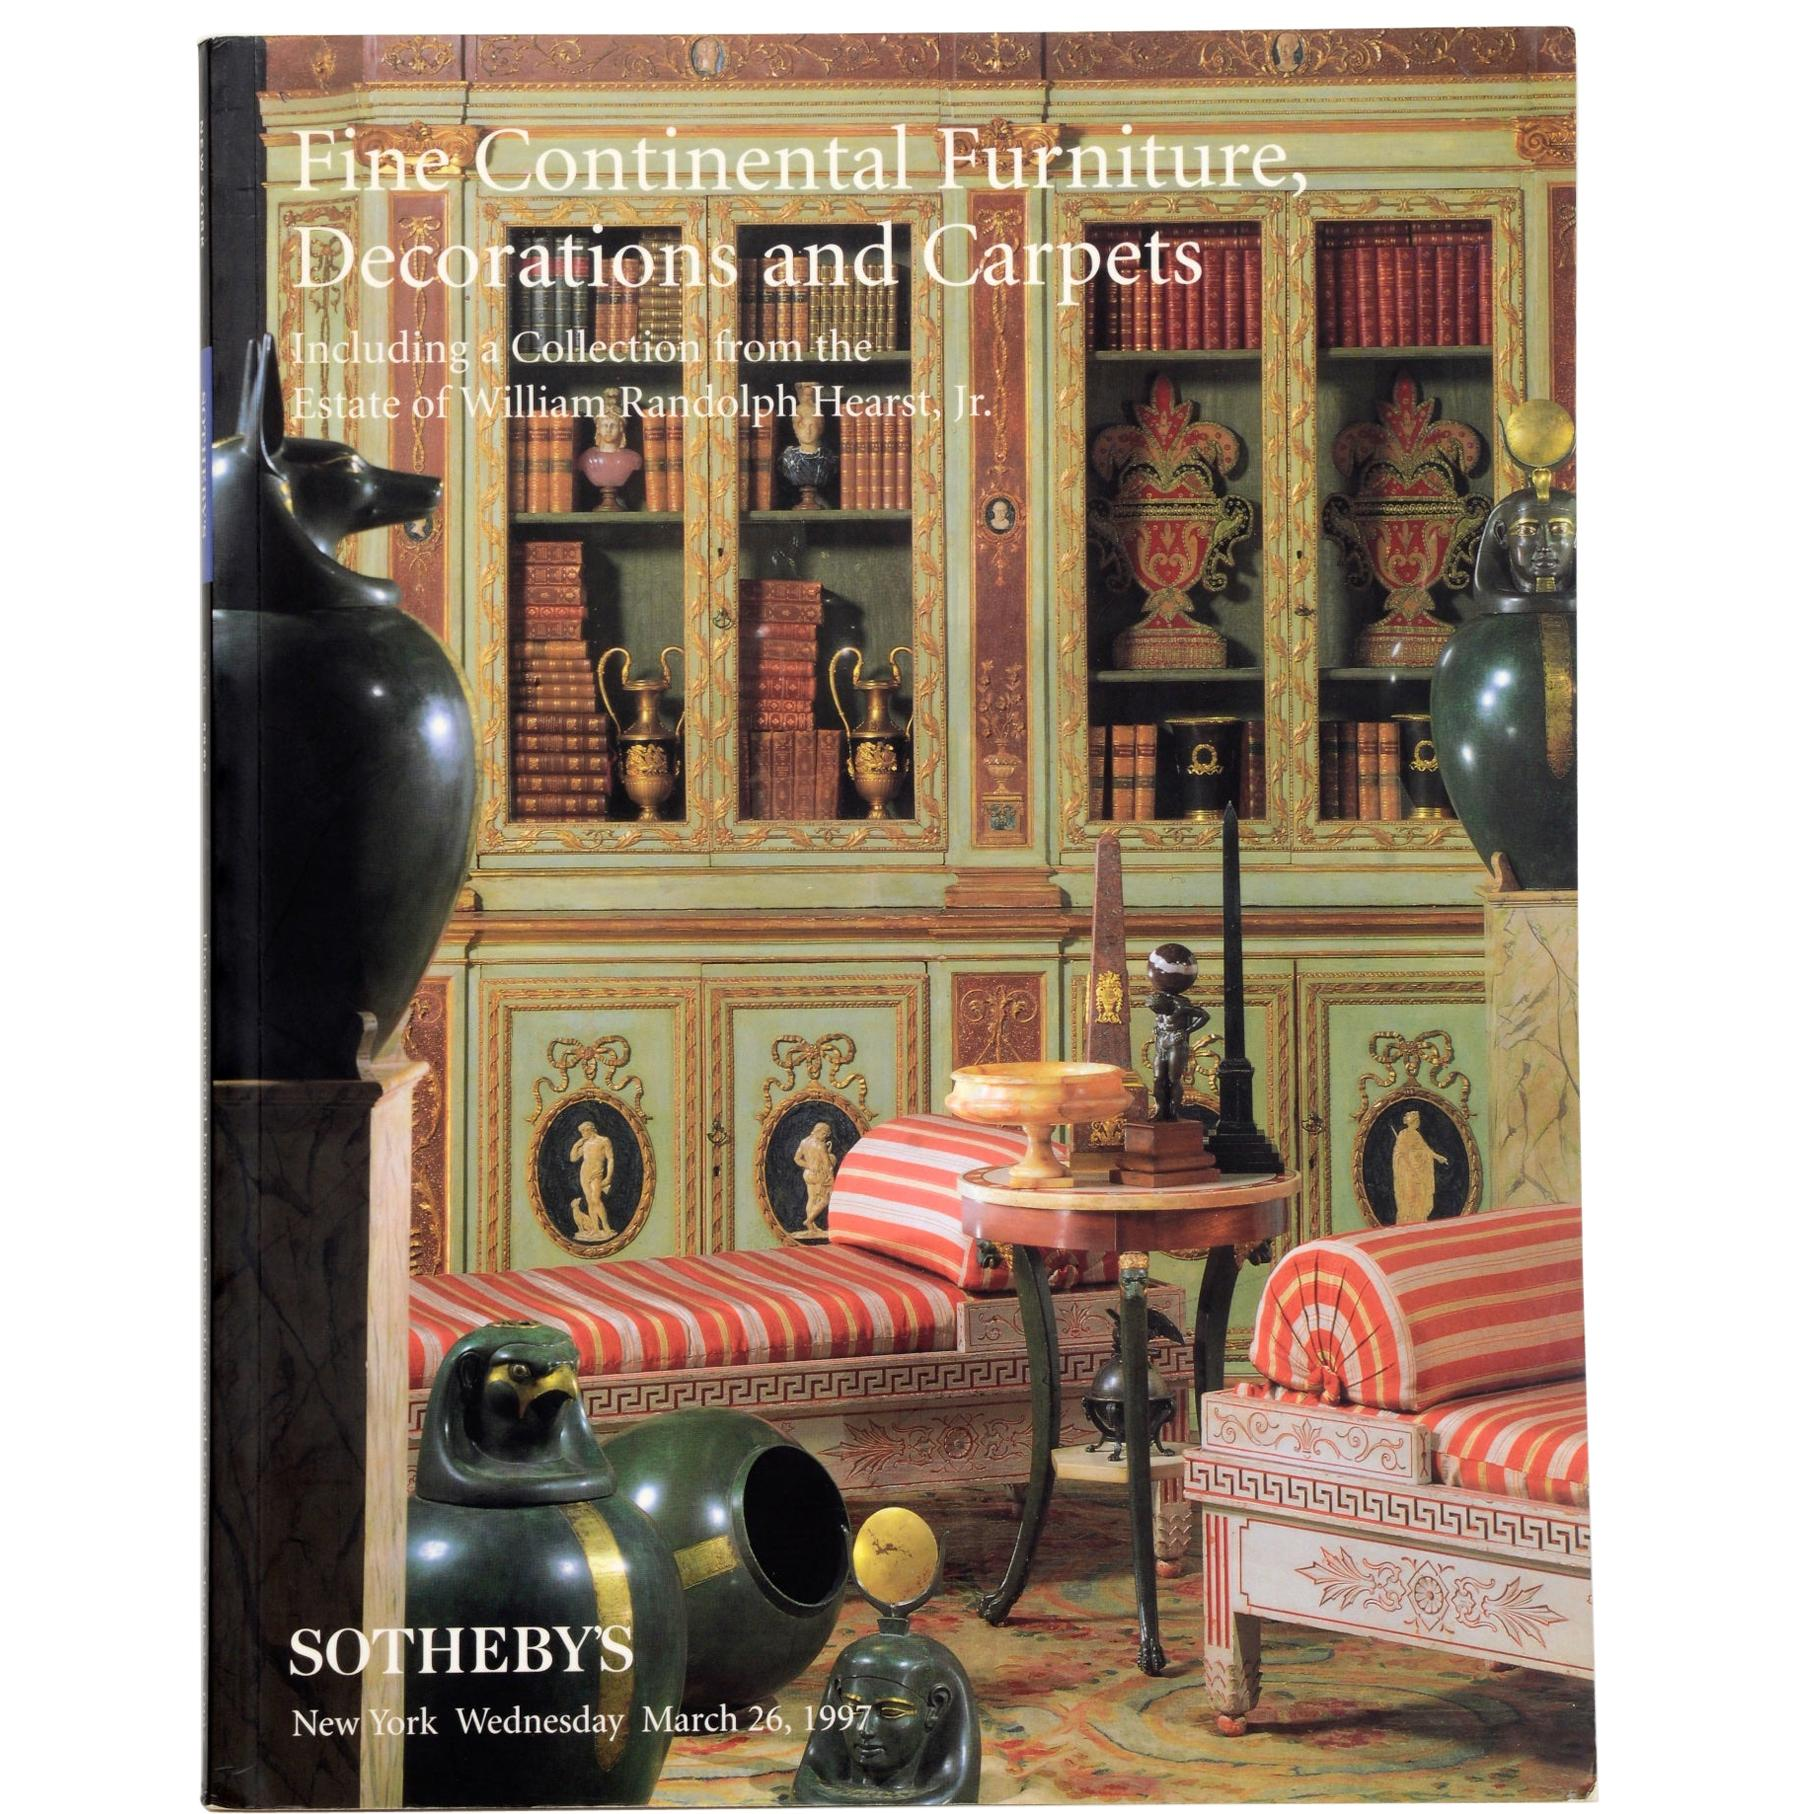 Sotheby's A Collection from The Estate of William Randolph Hearst, Jr.